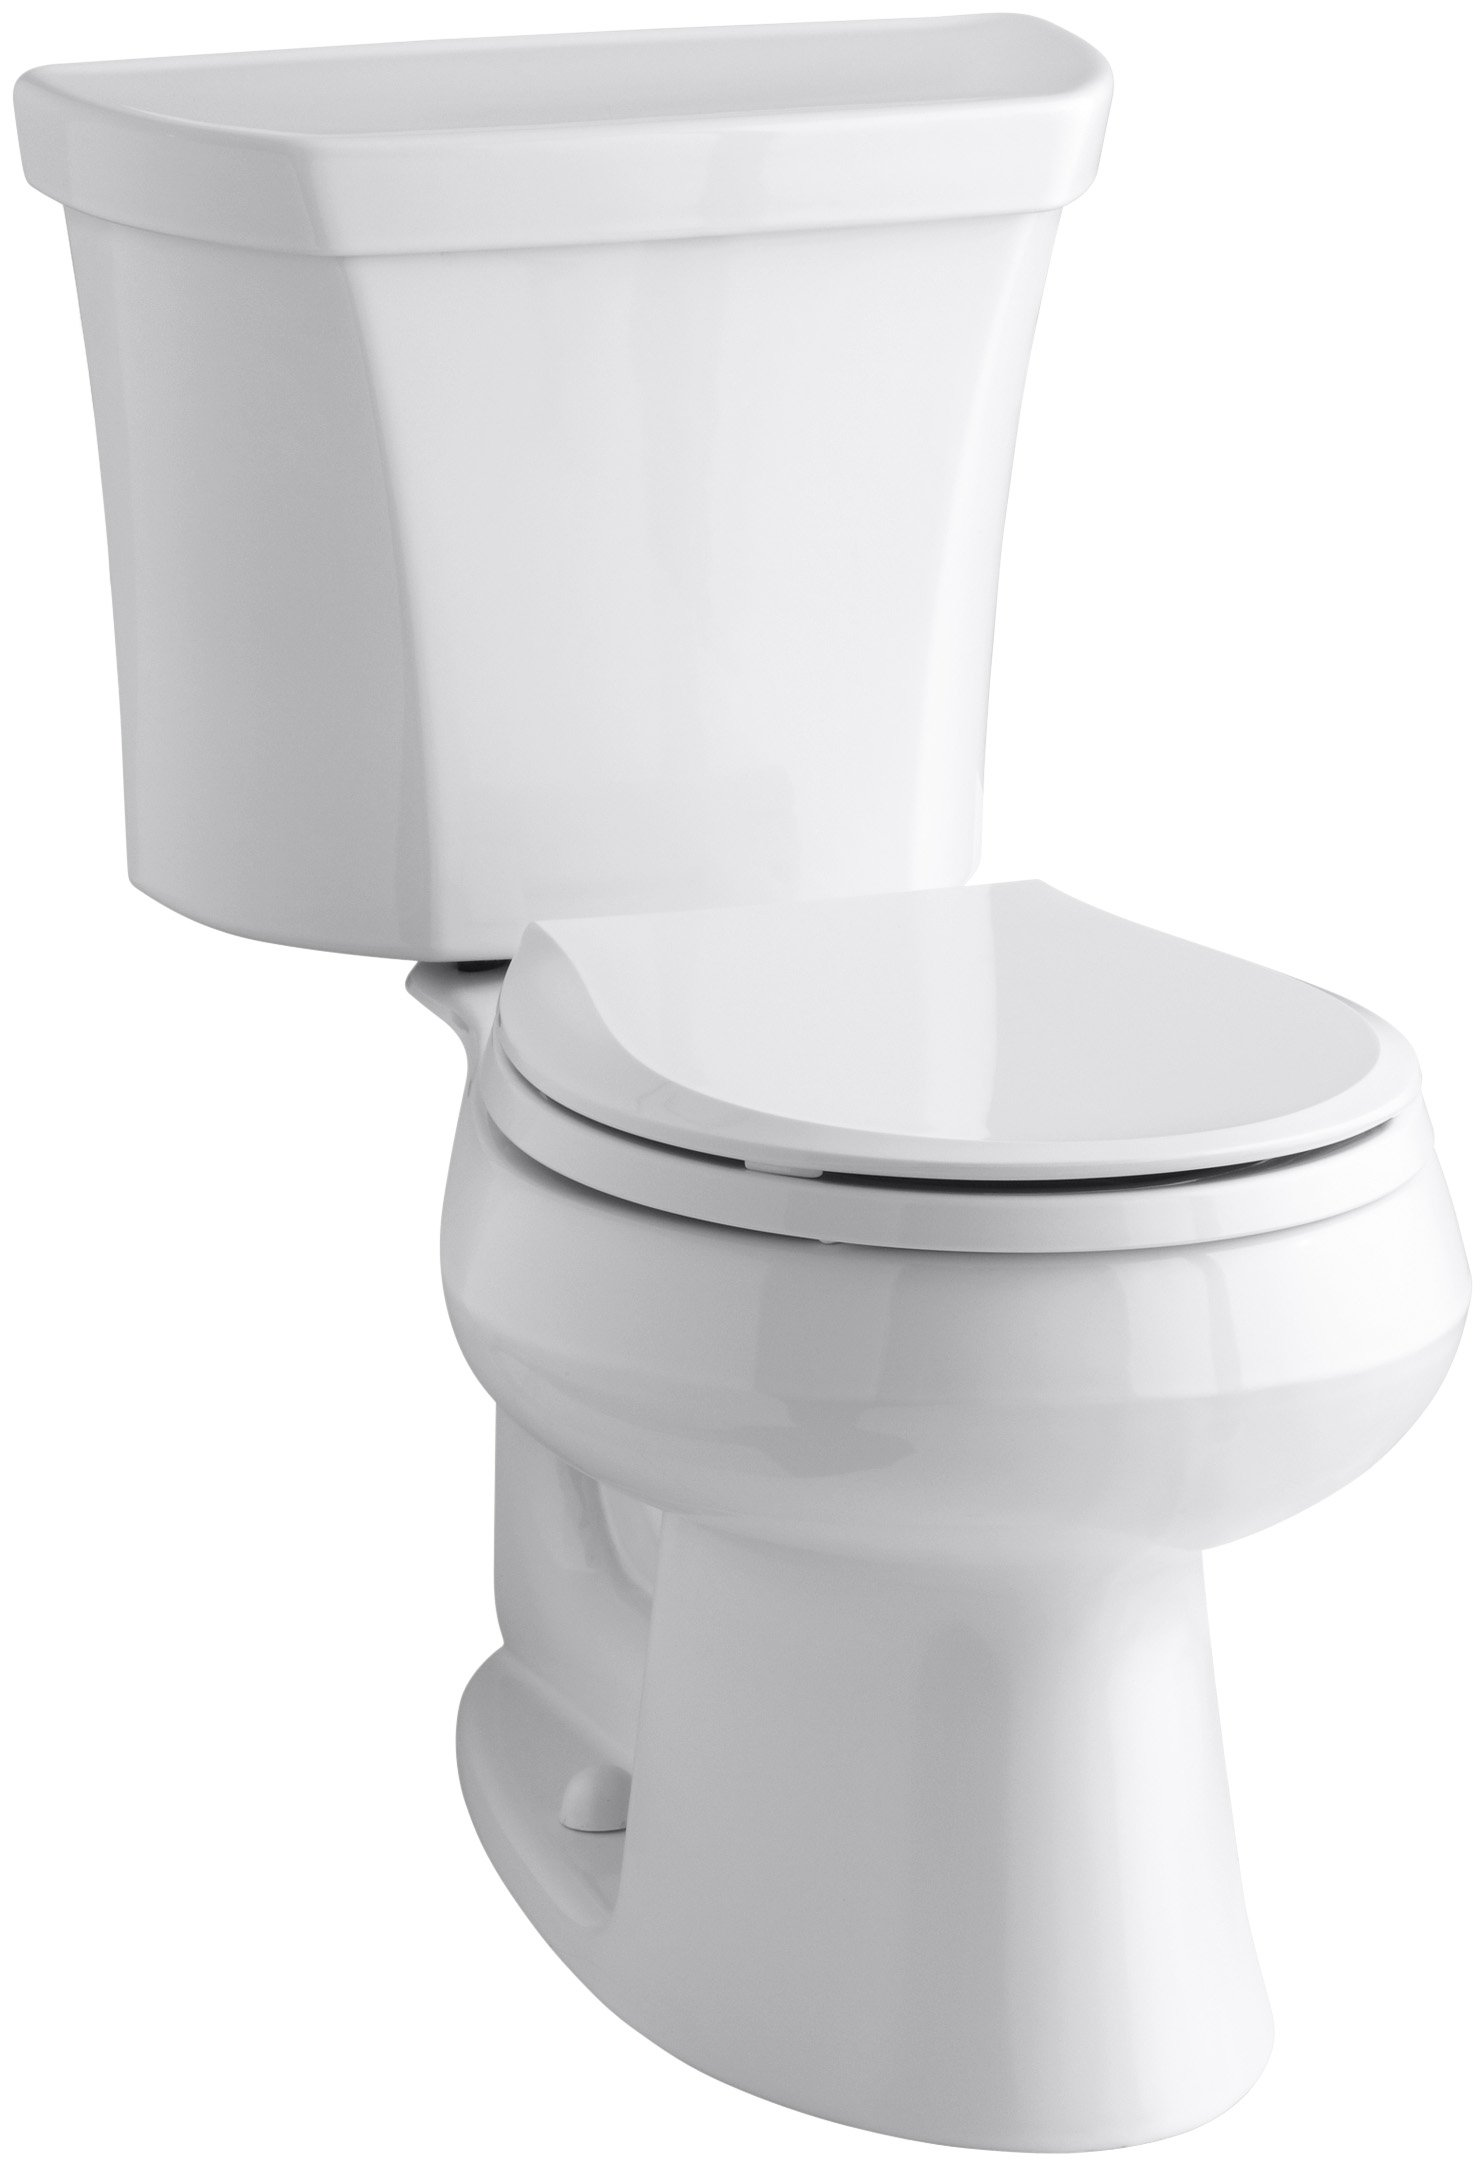 KOHLER K-3987-RA-0 Wellworth Round-Front Dual-Flush Toilet with Class Five Flush Technology and Right-Hand Trip Lever, White, 2 Piece by Kohler